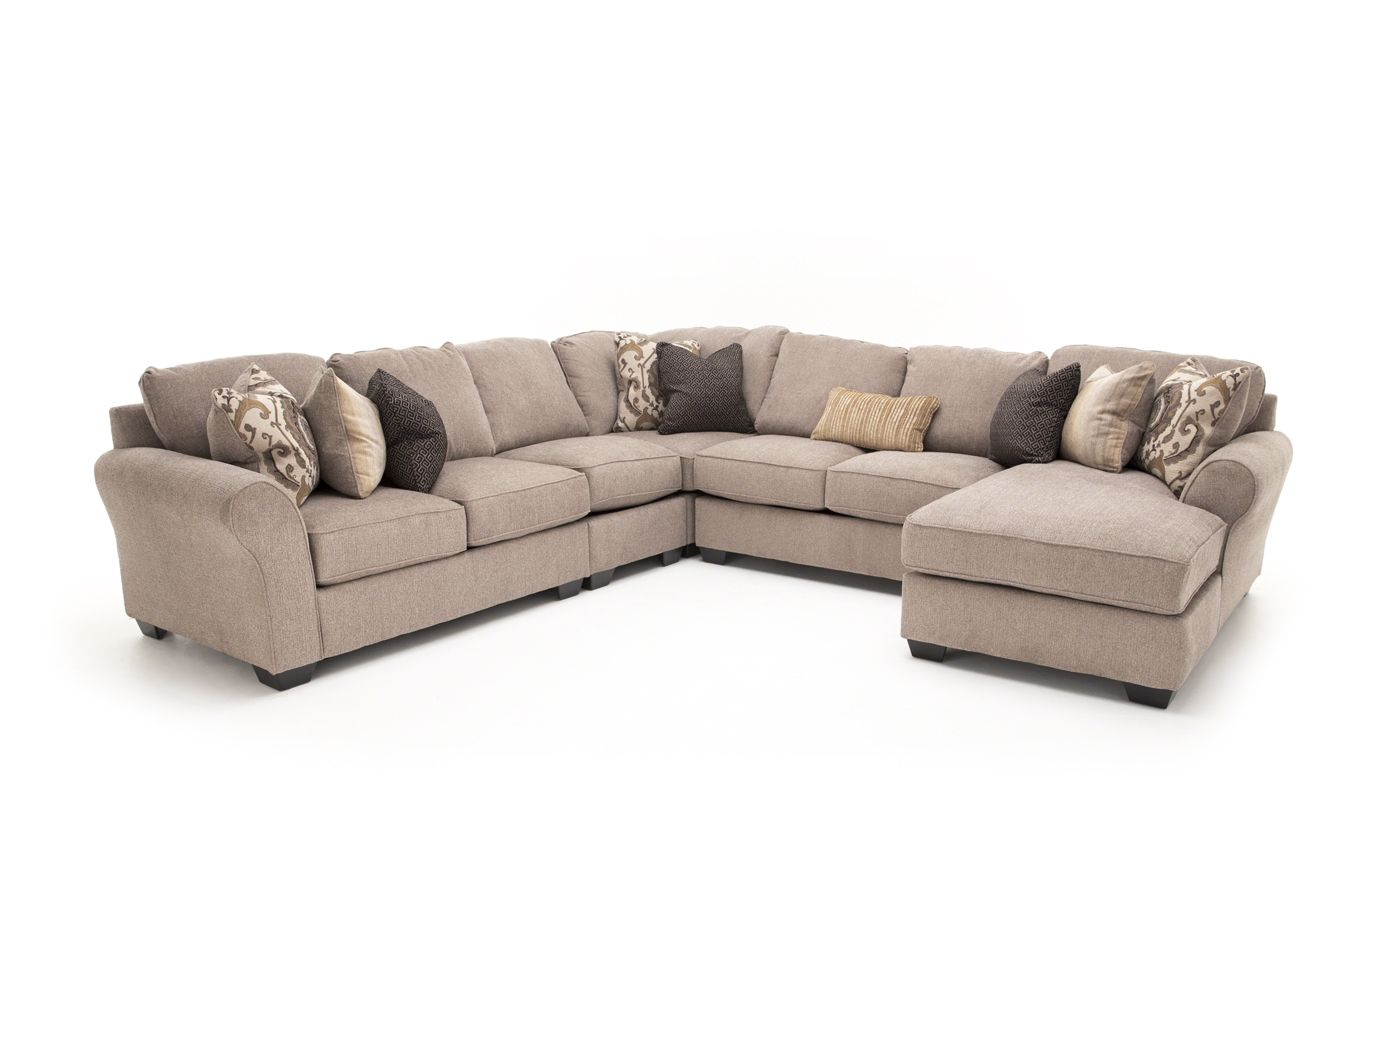 Maria 5 Pc Sectional Sectional Living Room Sectional Cheap Furniture Near Me